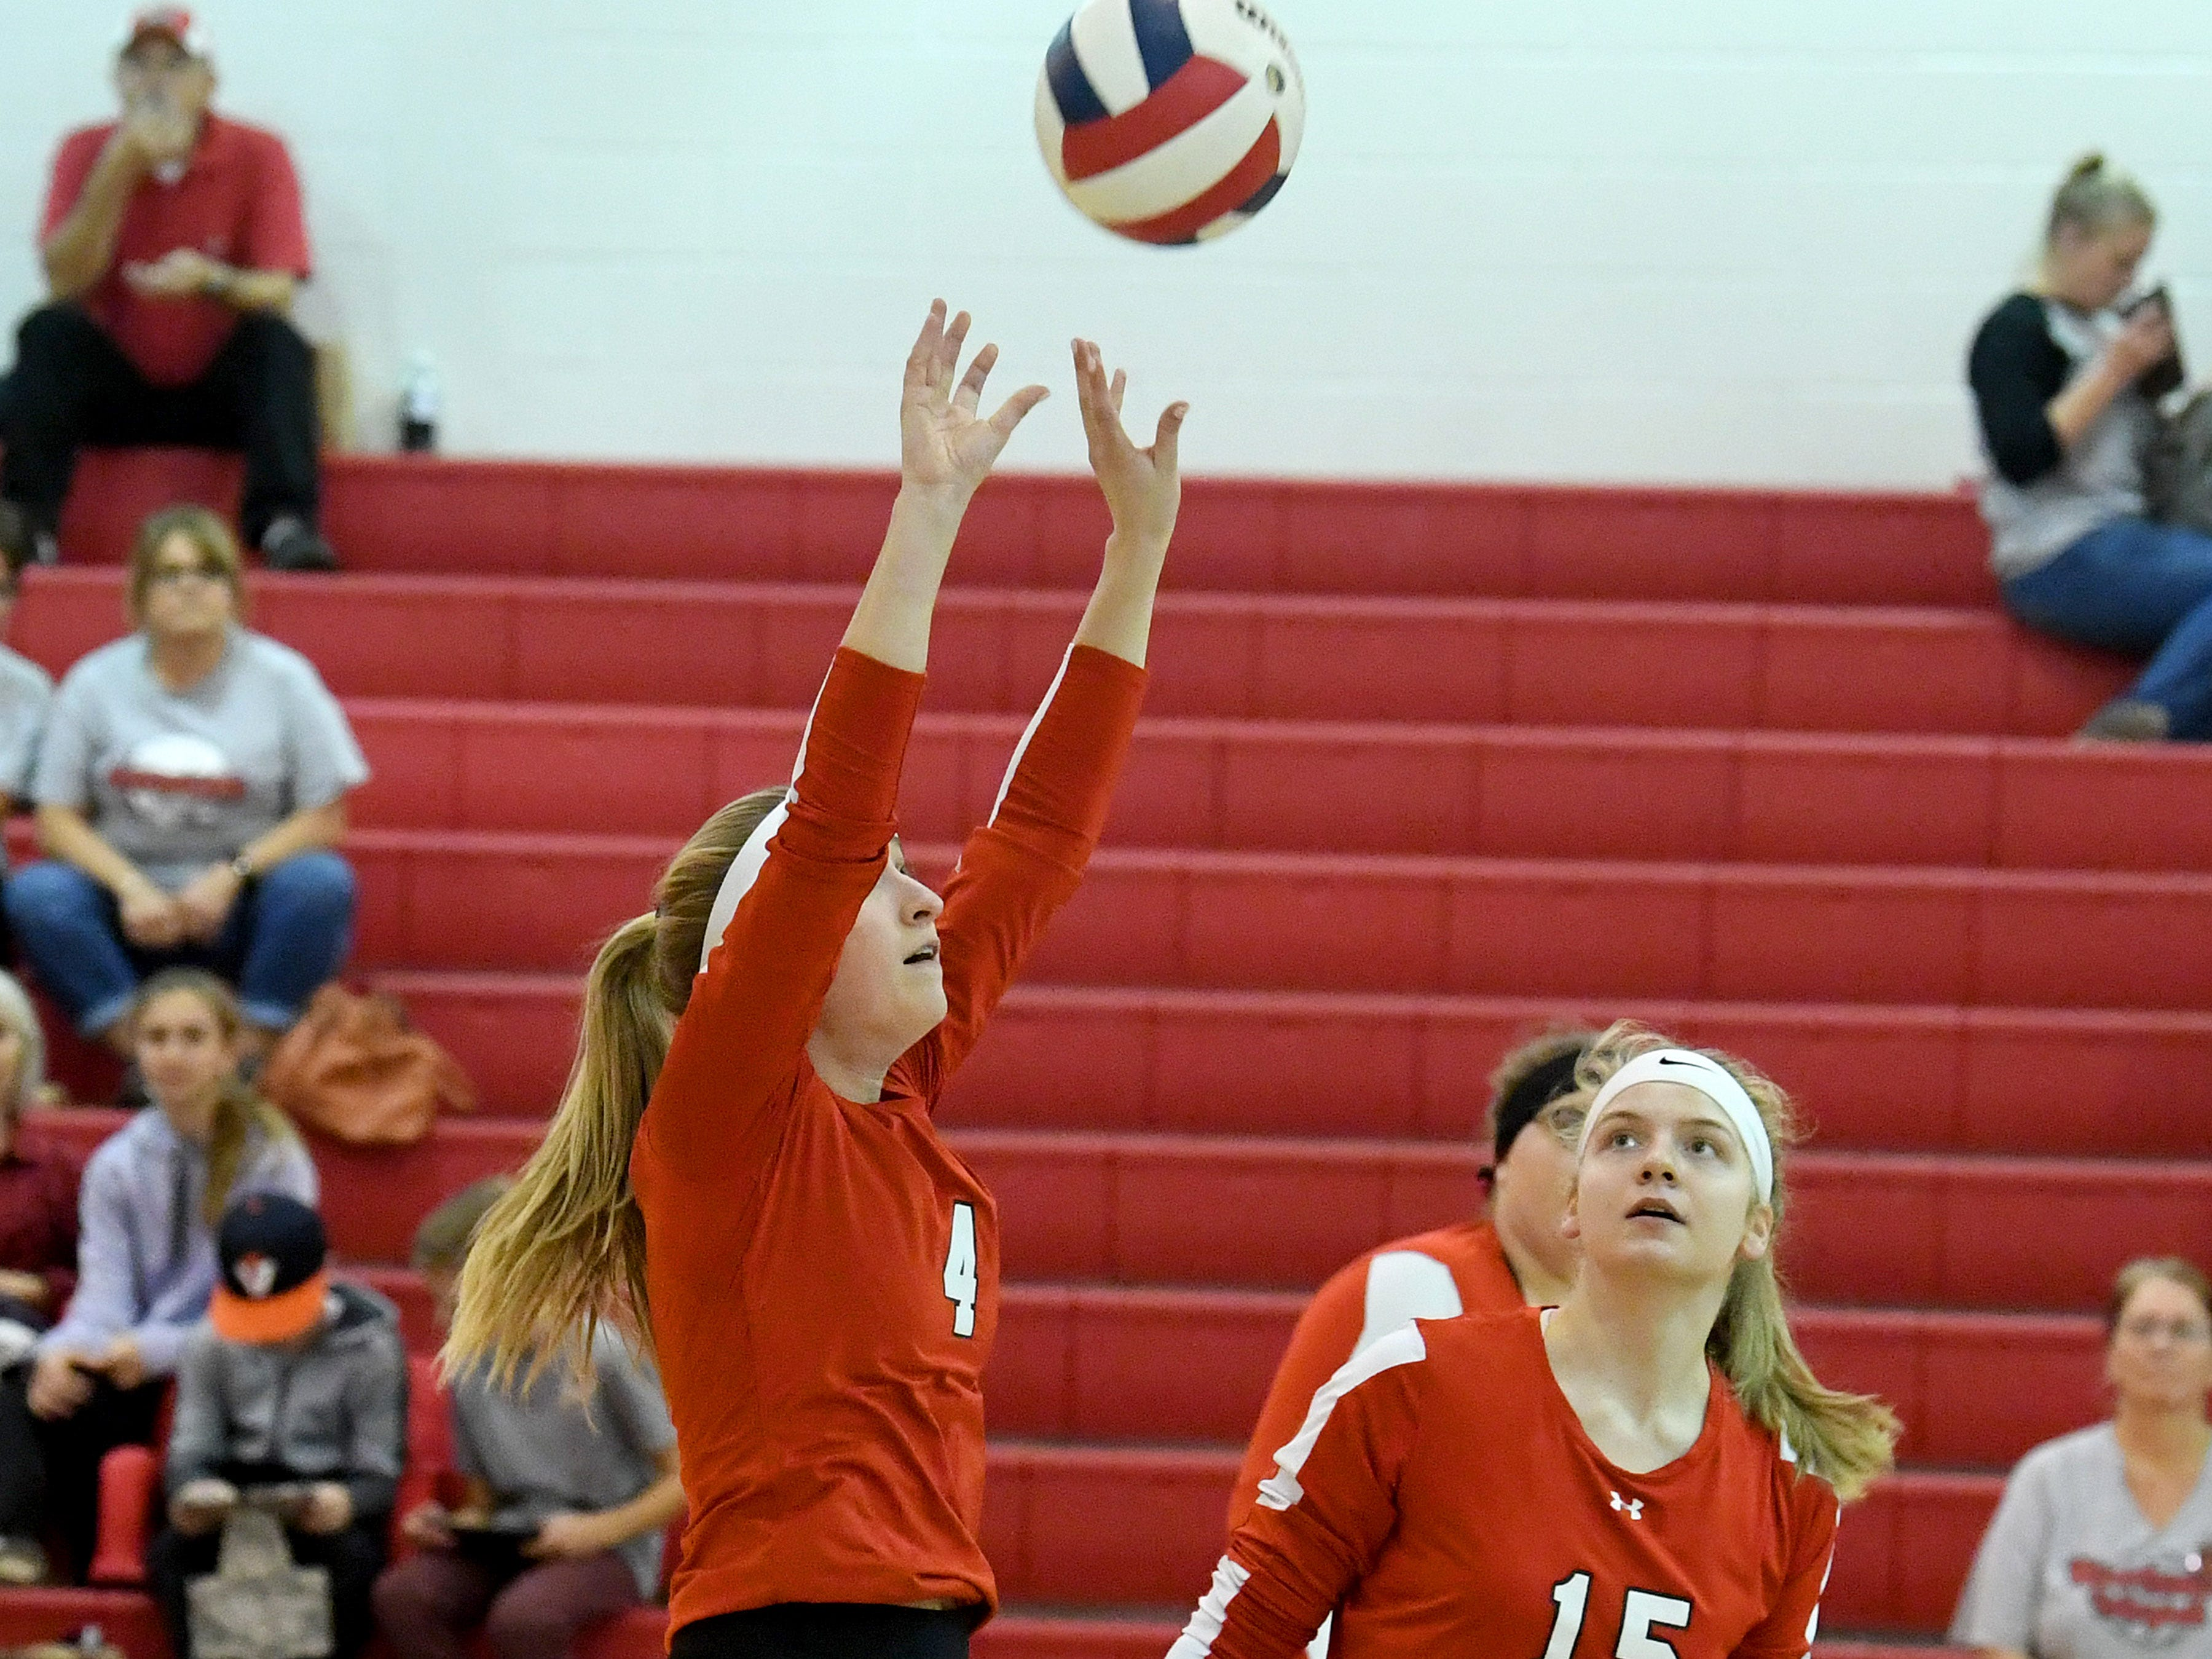 Riverheads' Emma Tomlinson sets the ball as teammate Eva Frederick watches during a Region 1B quarterfinal match, played in Greenville on Thursday, Nov. 1, 2018.